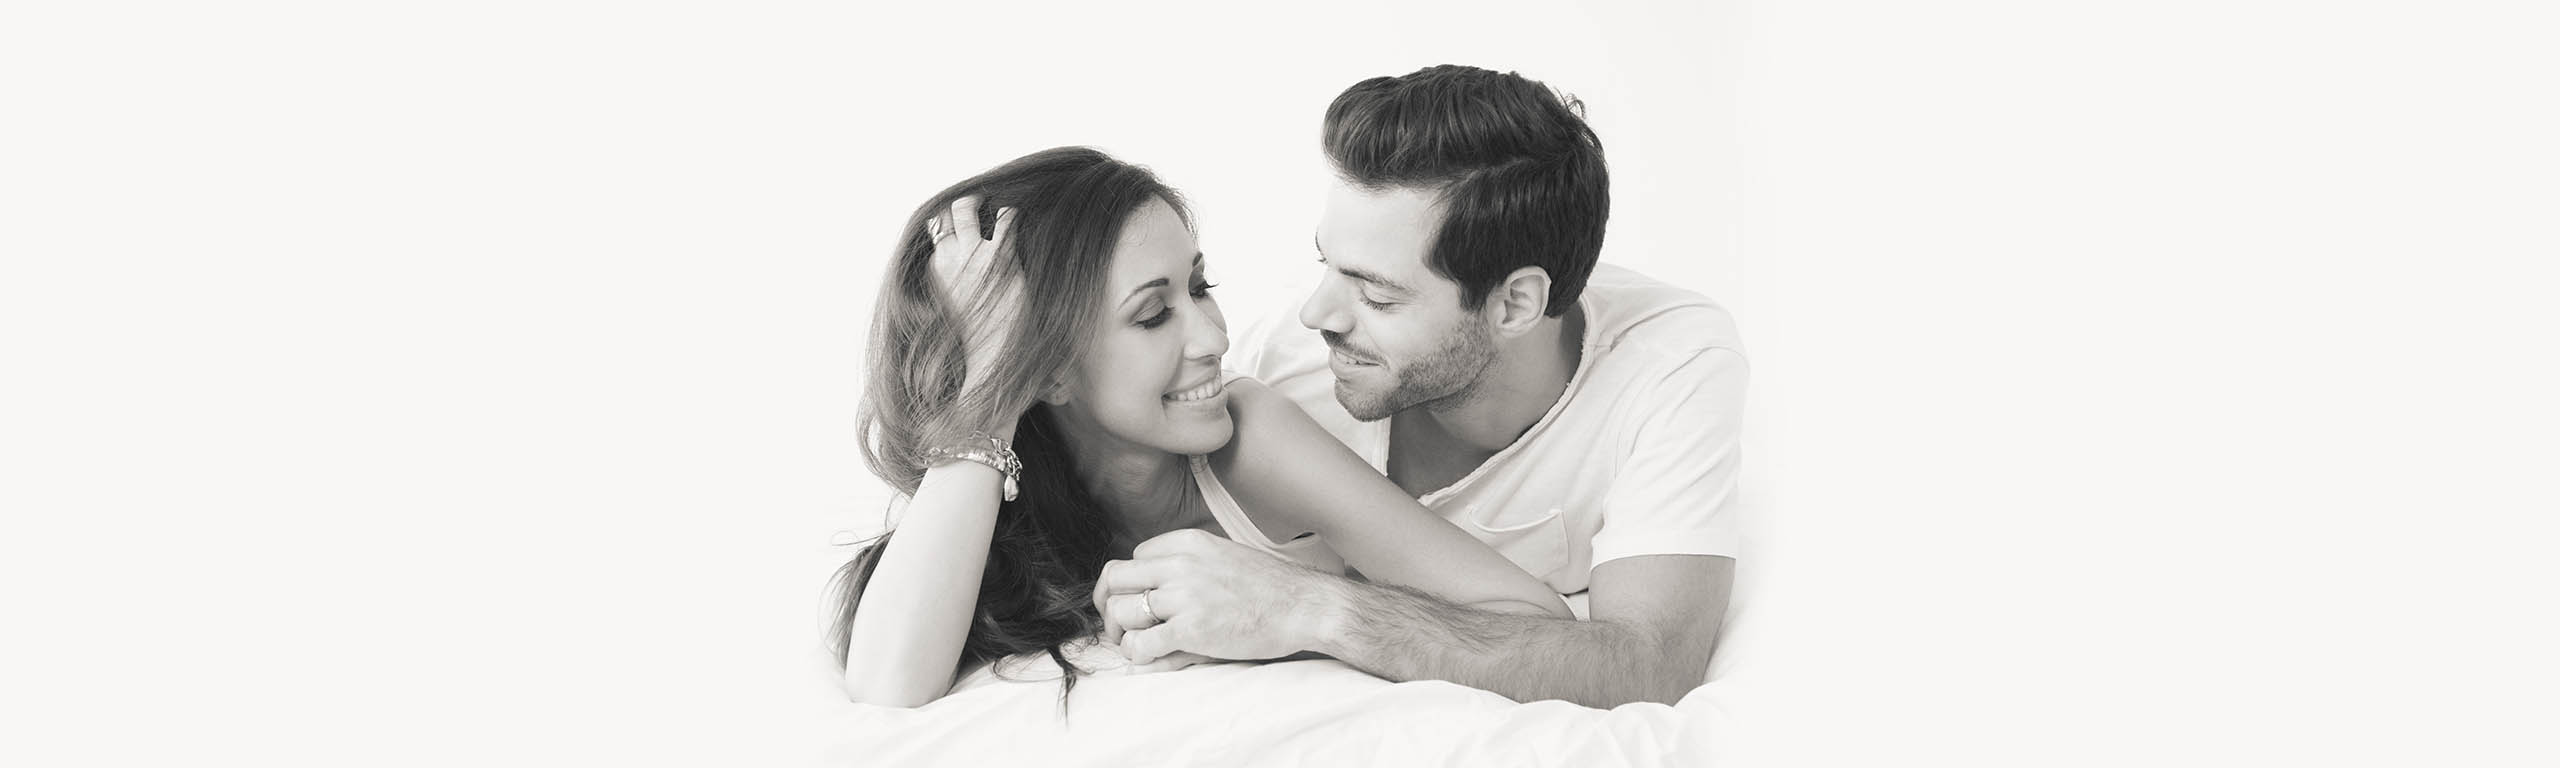 Black and white photography of romatic couple